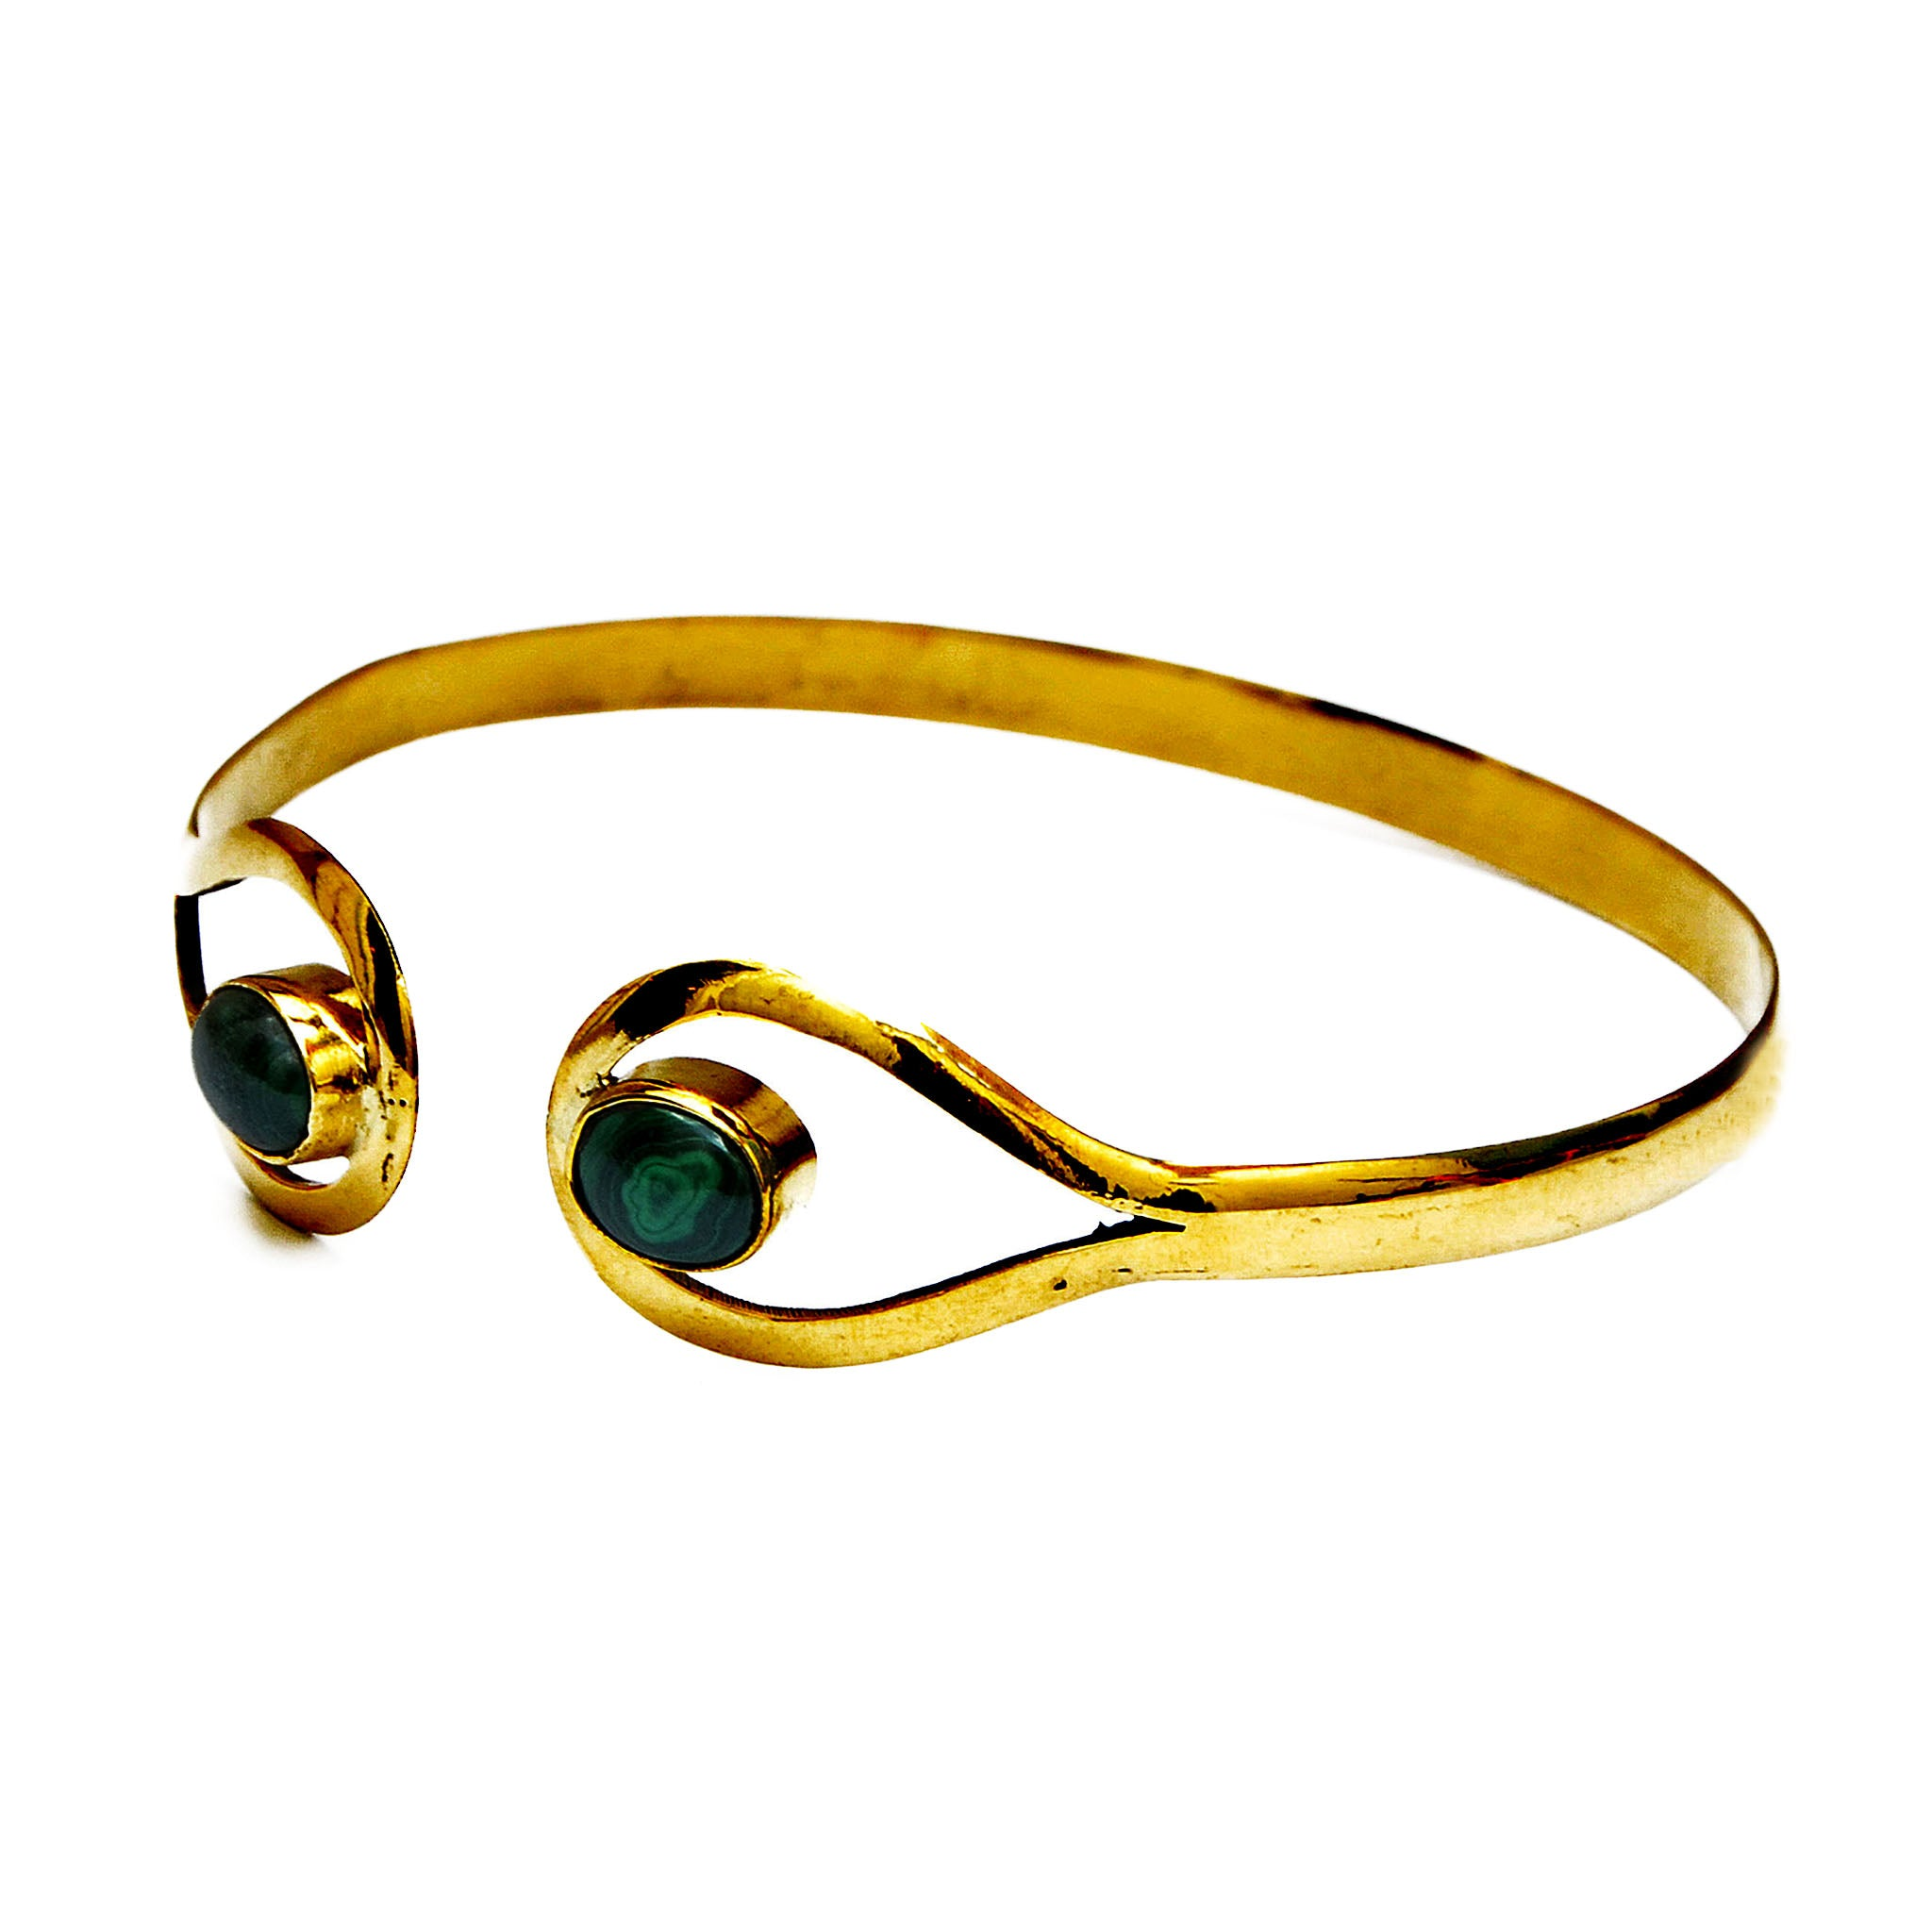 Gold armlet with stones